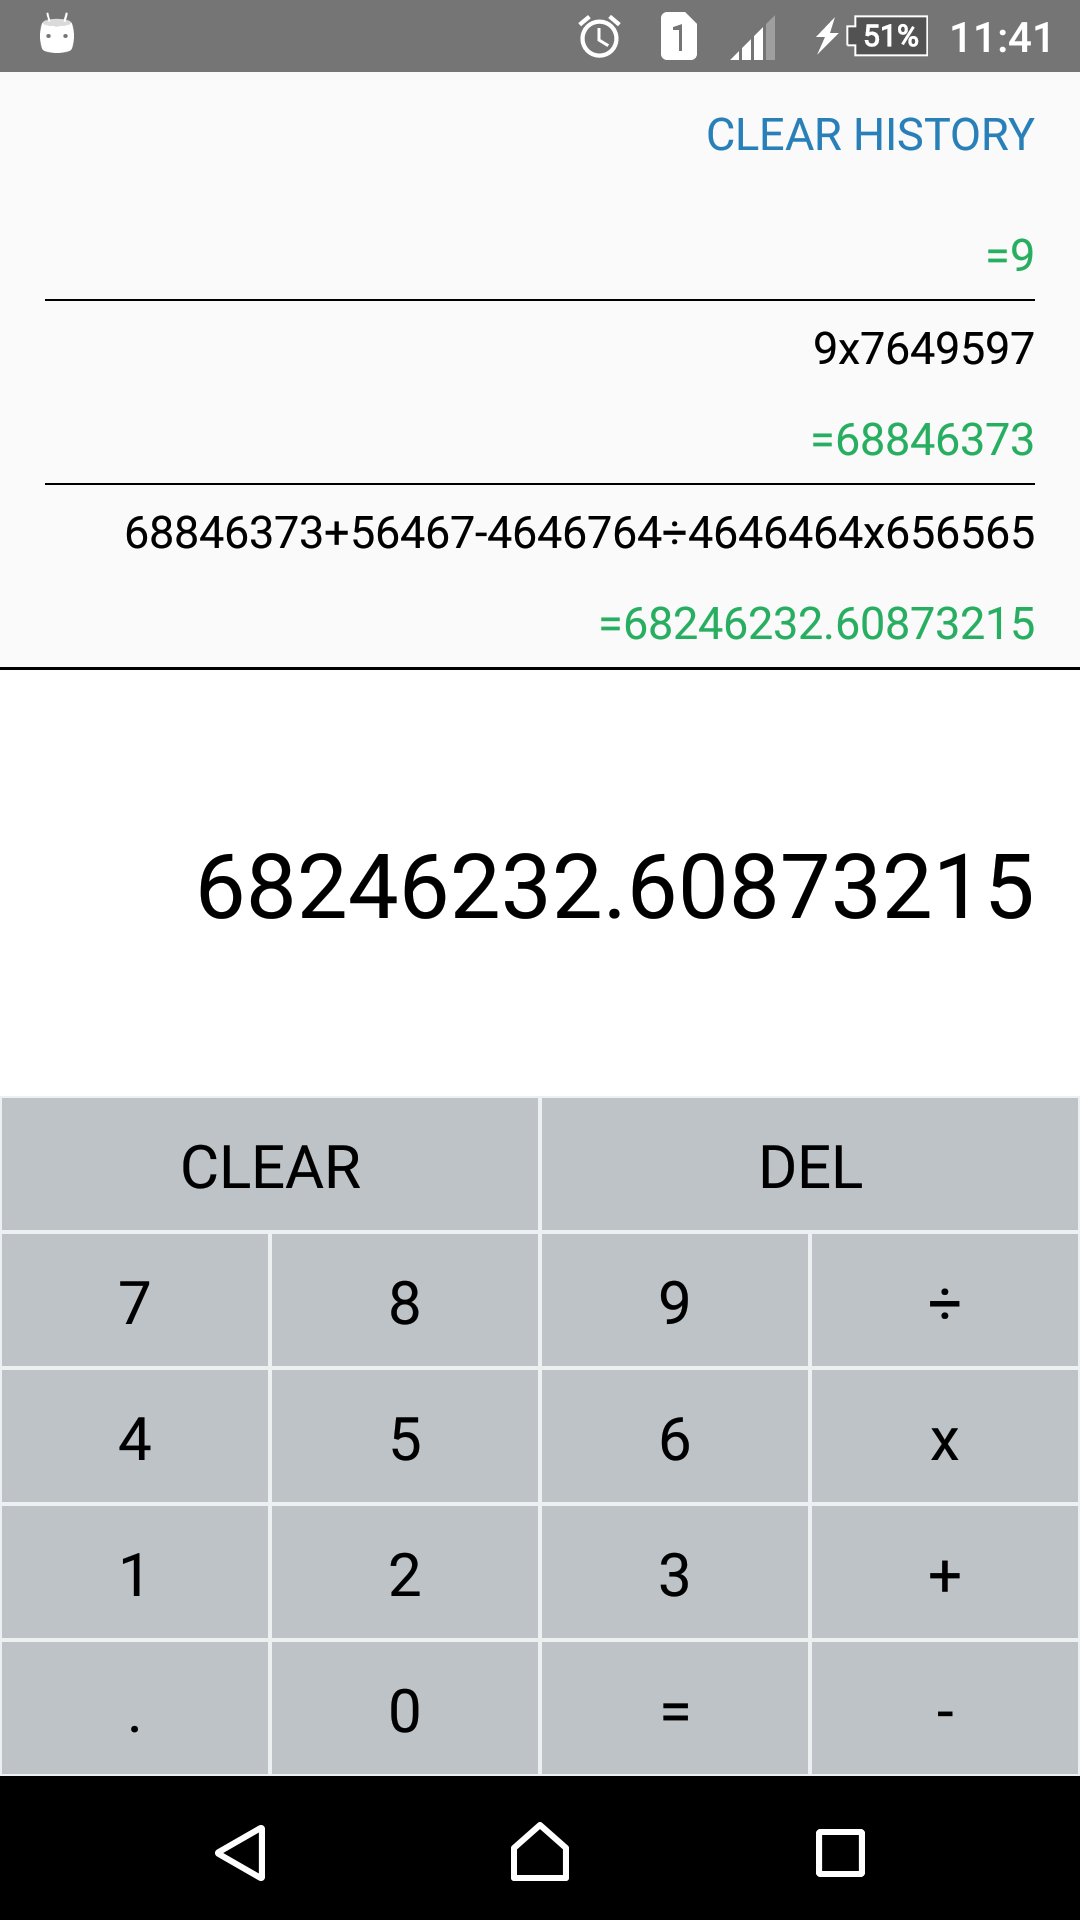 React Native Experiment: Building a Calculator from Scratch